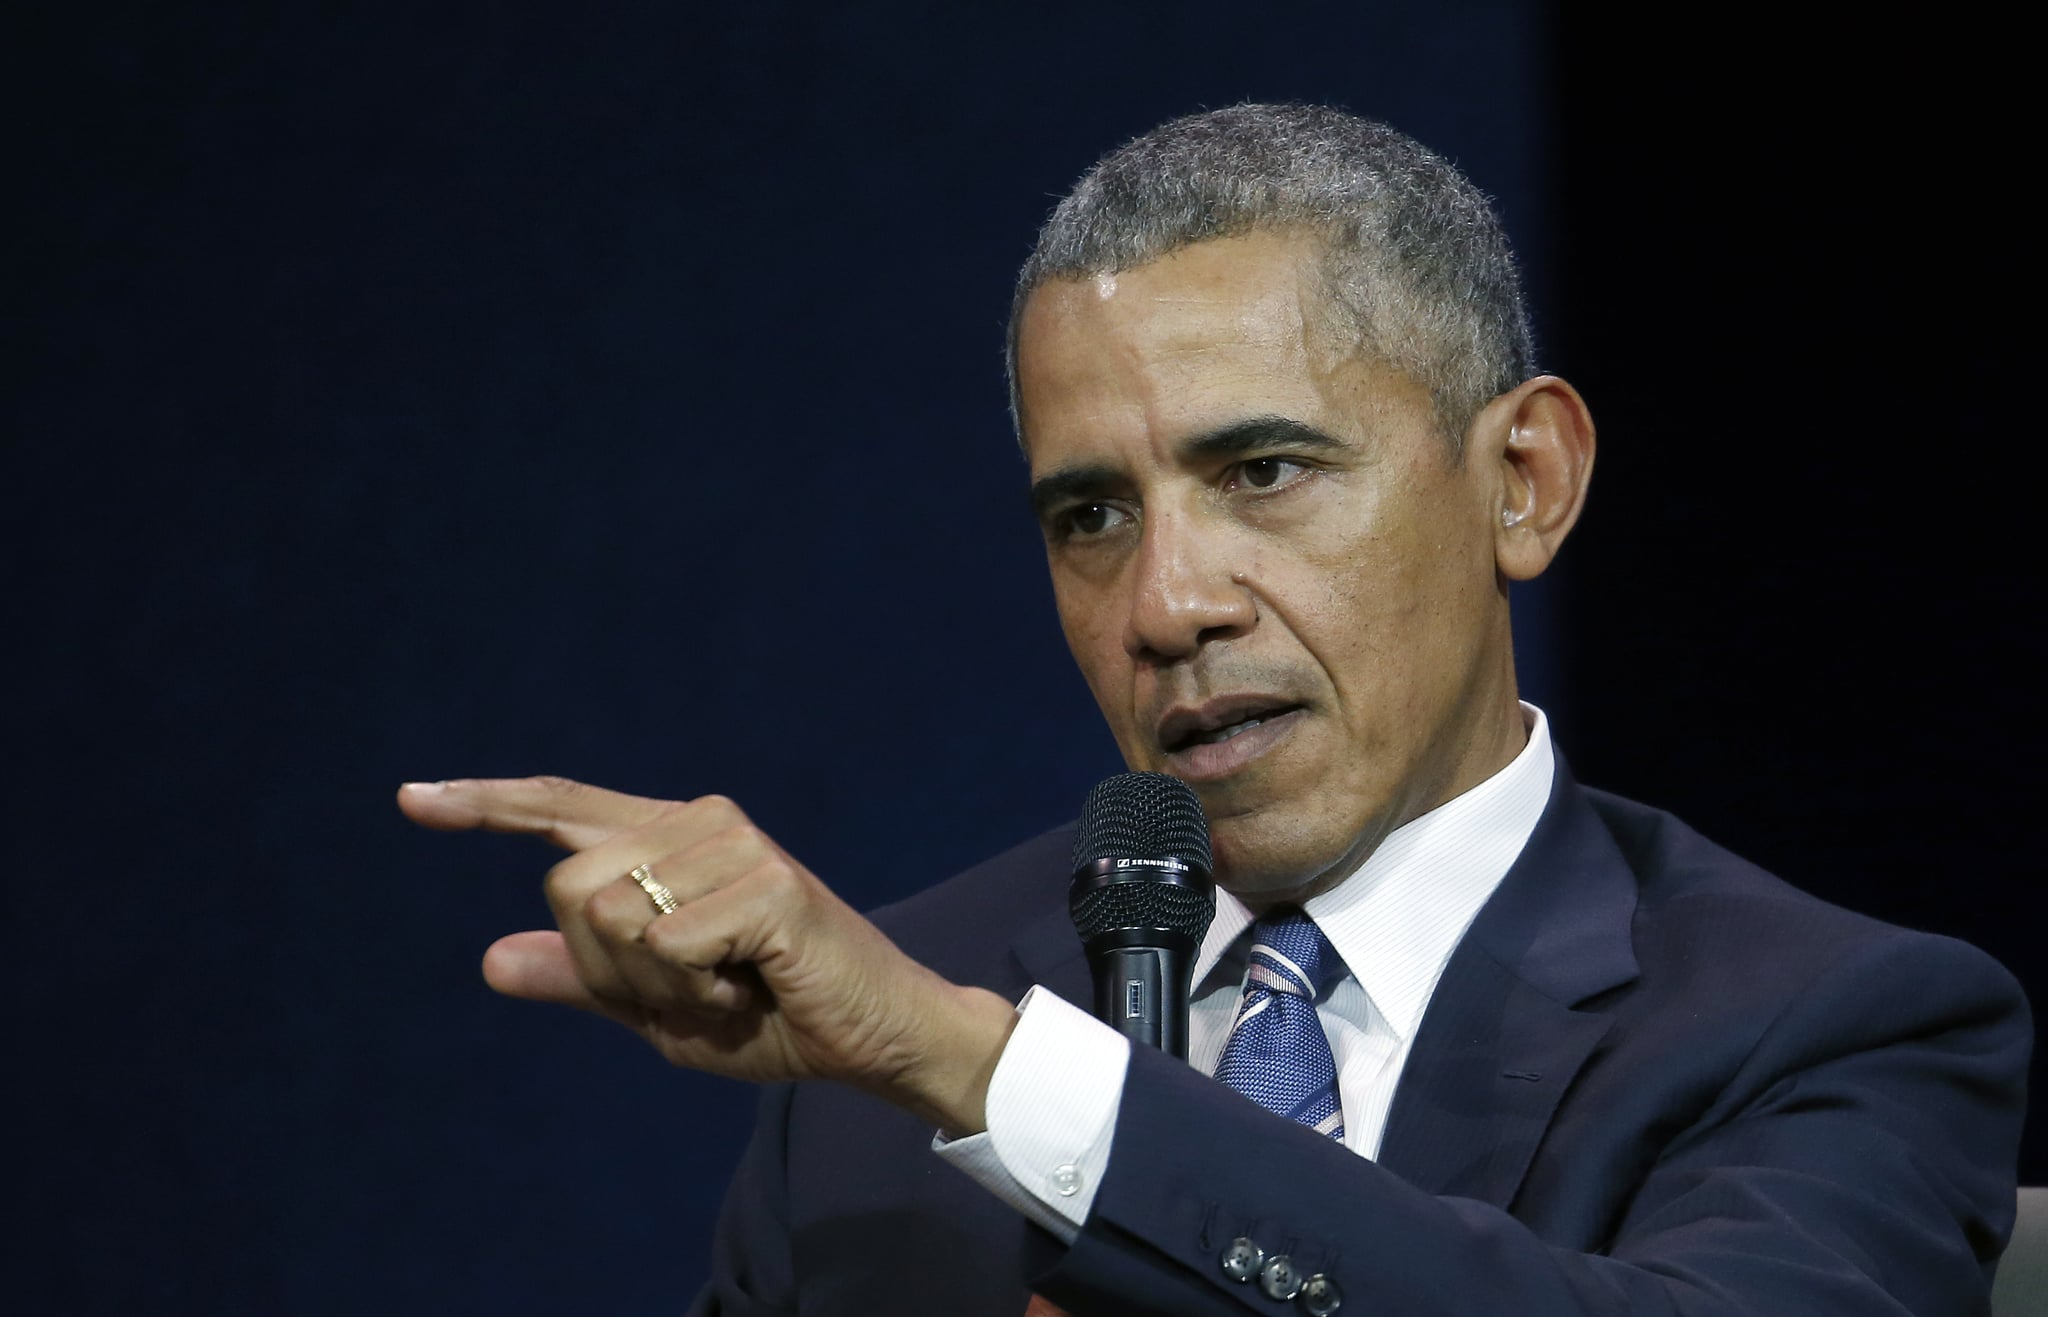 PARIS, FRANCE - DECEMBER 02:  Former US President Barack Obama delivers a speech during the 7th summit of